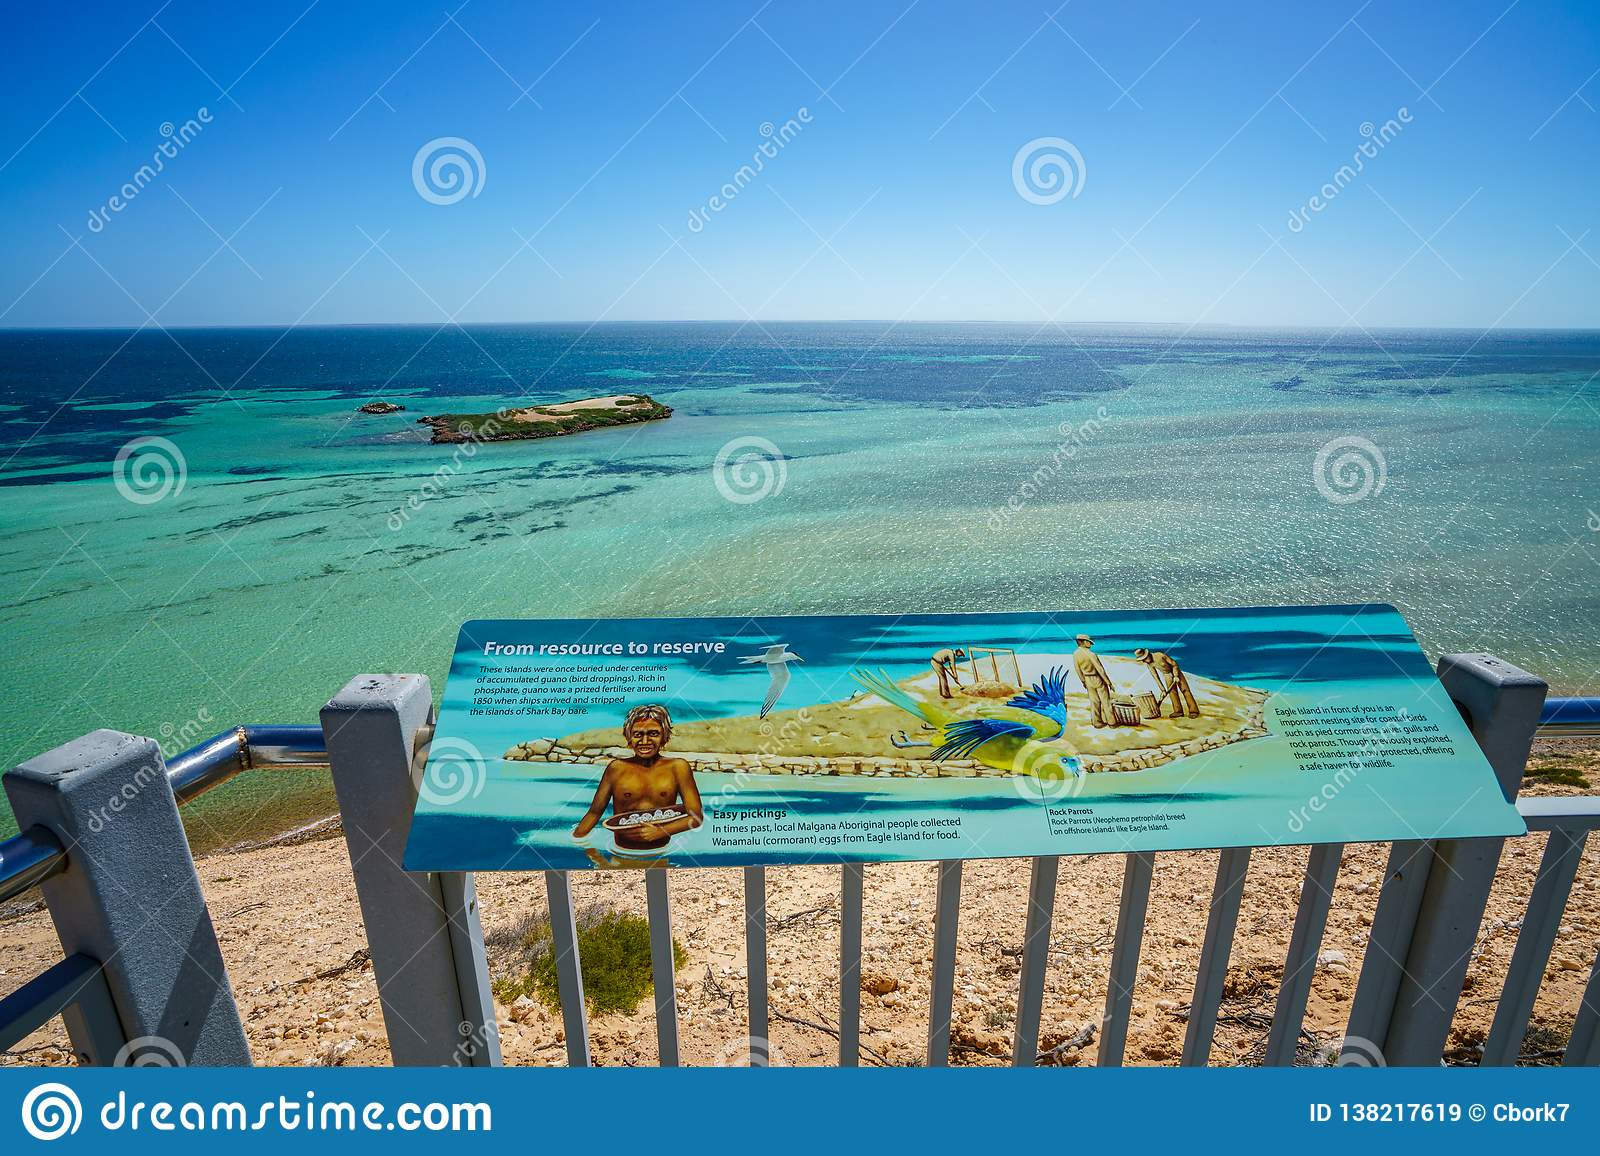 Editorial Who Is Looking Out For These >> Looking At The Ocean From Eagle Bluff At Coral Coast Western